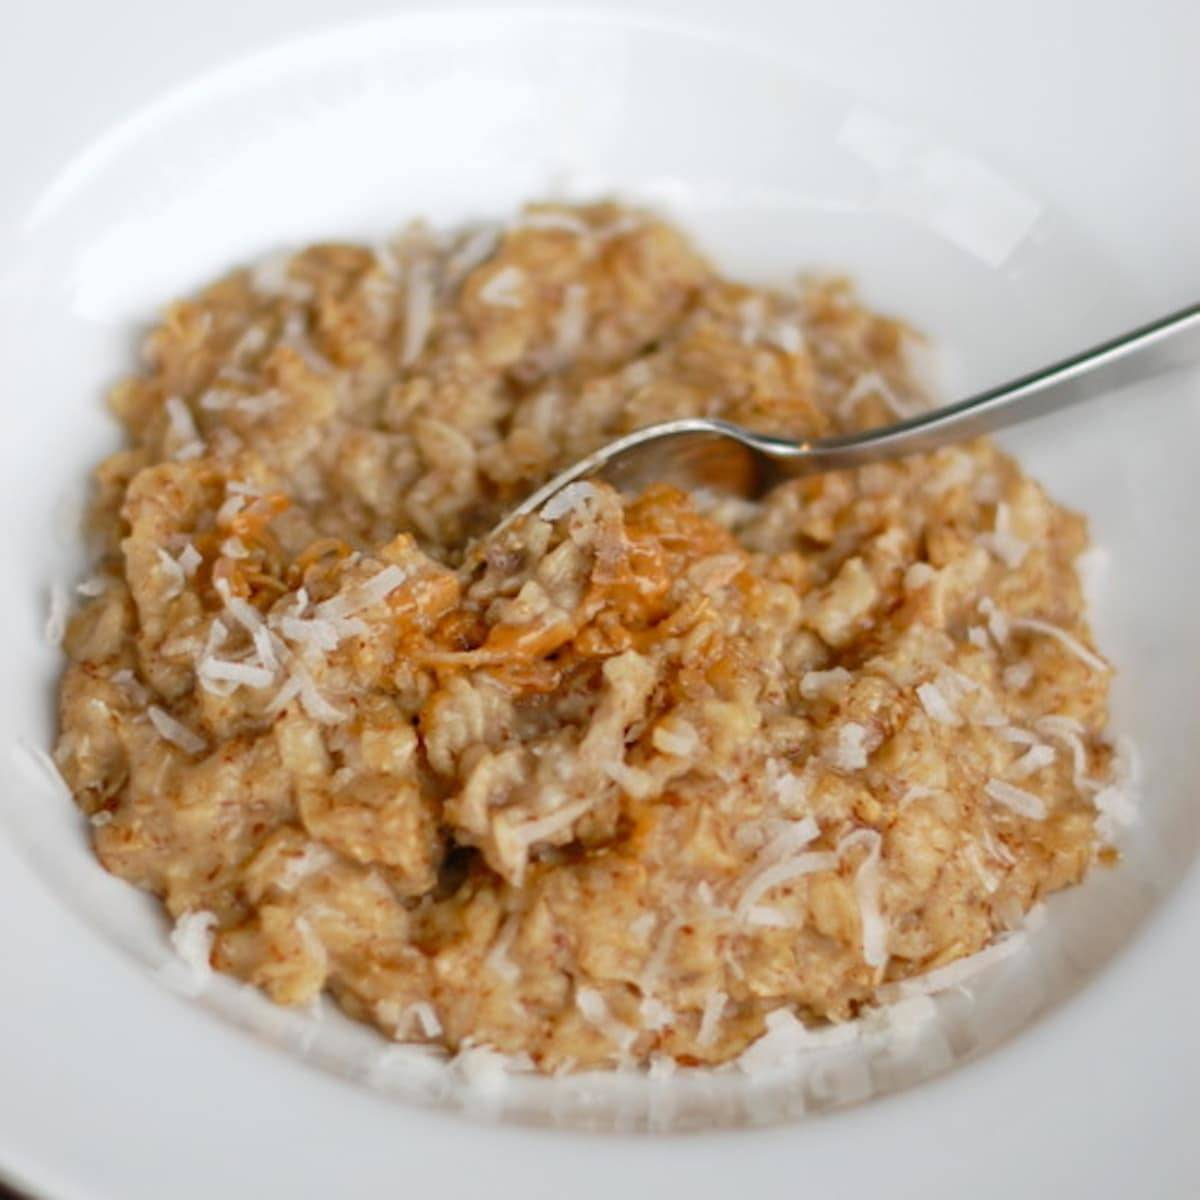 Coconut peanut butter oatmeal with coconut shreds and a spoon.